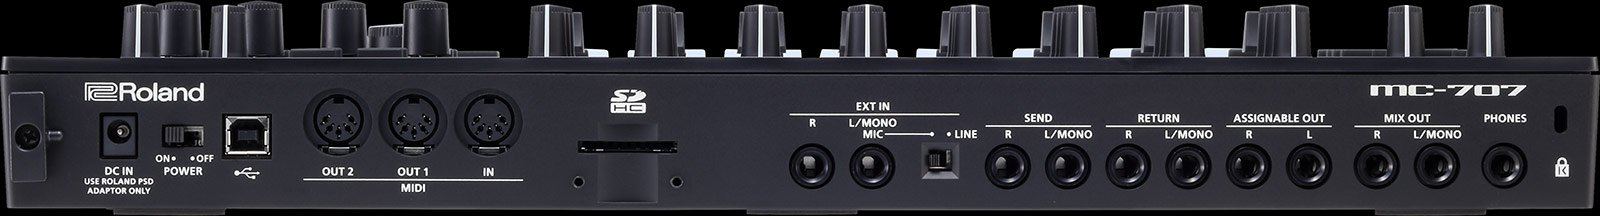 The I/O of the MC-707 resembles predecessor grooveboxes.